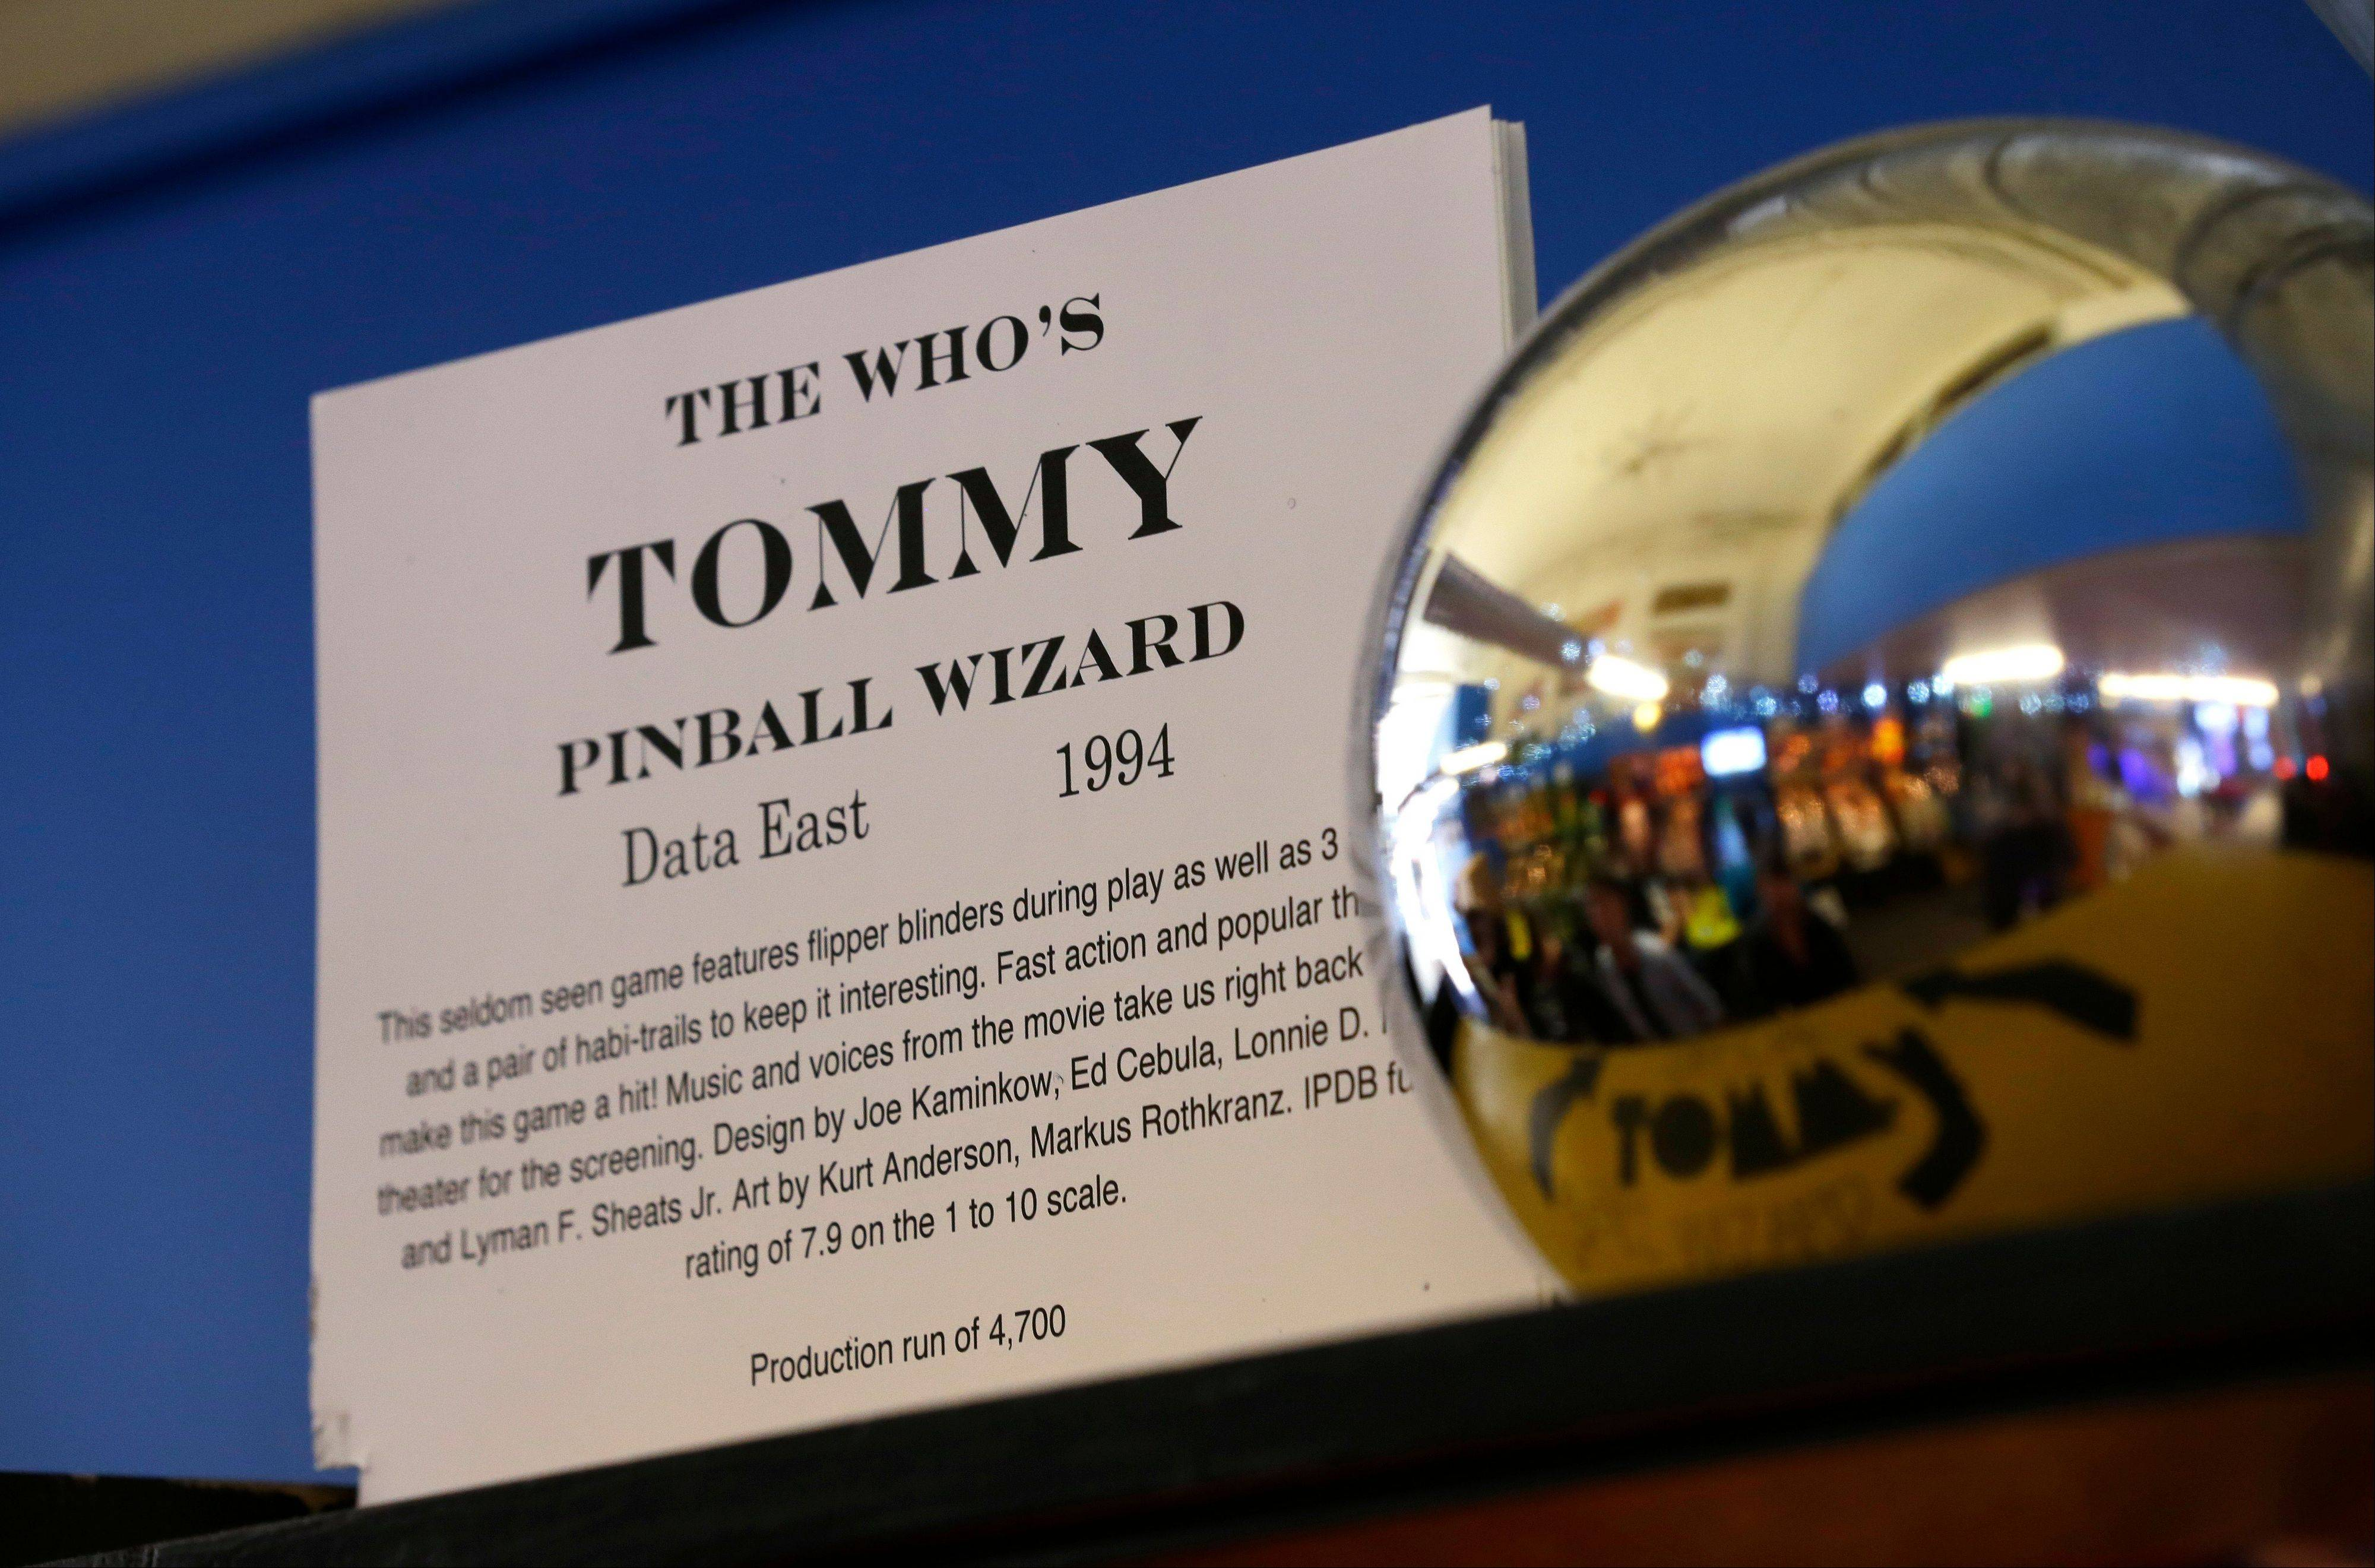 The 1994 The Who's Tommy pinball machine is on display near a giant pinball at the Seattle Pinball Museum.